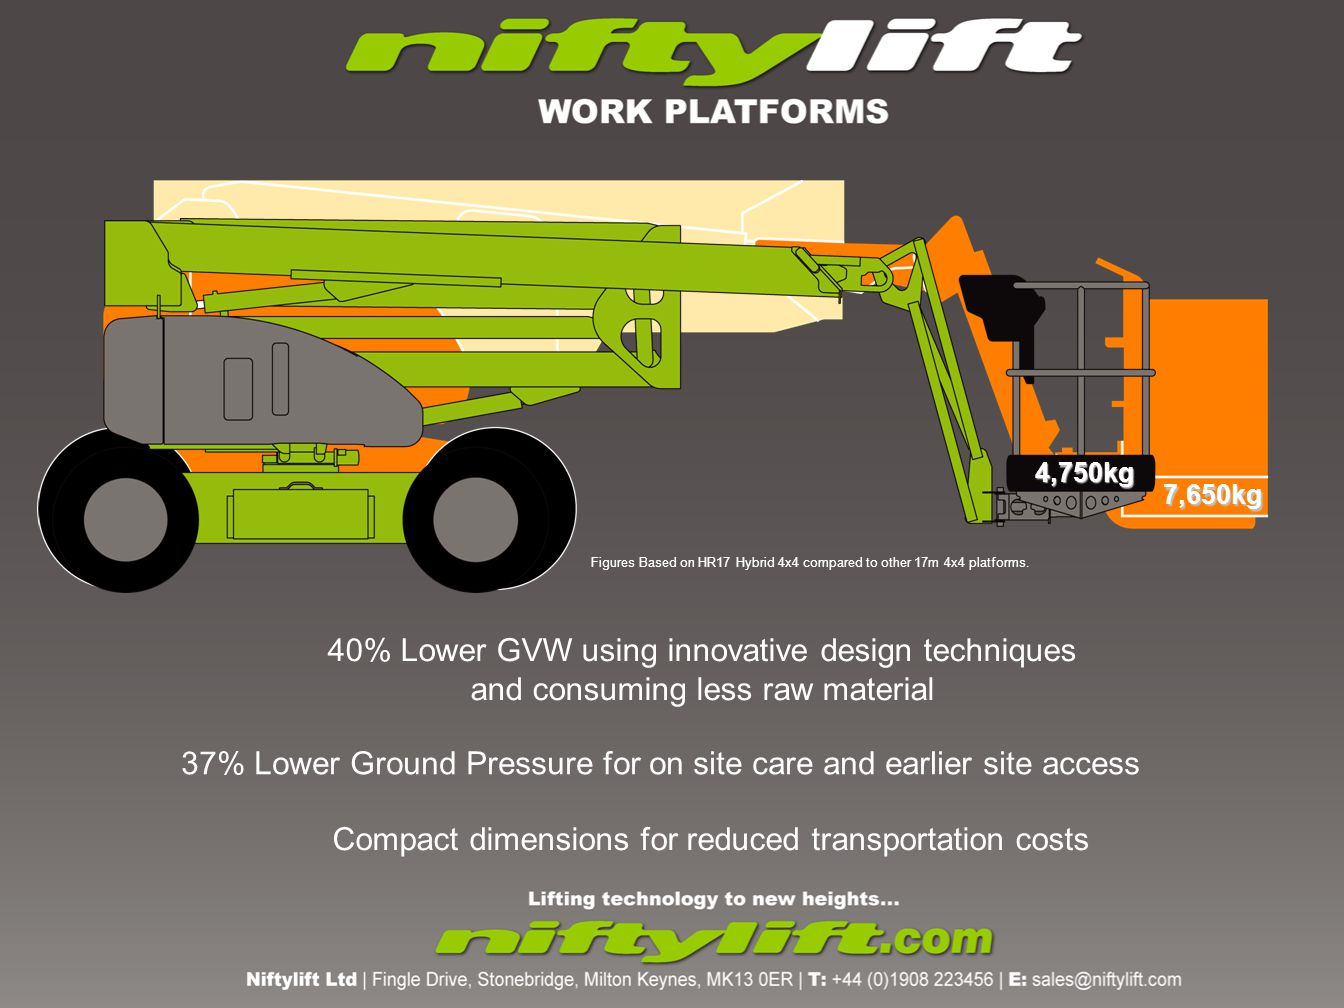 40% Lower GVW using innovative design techniques and consuming less raw material 37% Lower Ground Pressure for on site care and earlier site access Compact dimensions for reduced transportation costs 4,750kg 7,650kg Figures Based on HR17 Hybrid 4x4 compared to other 17m 4x4 platforms.